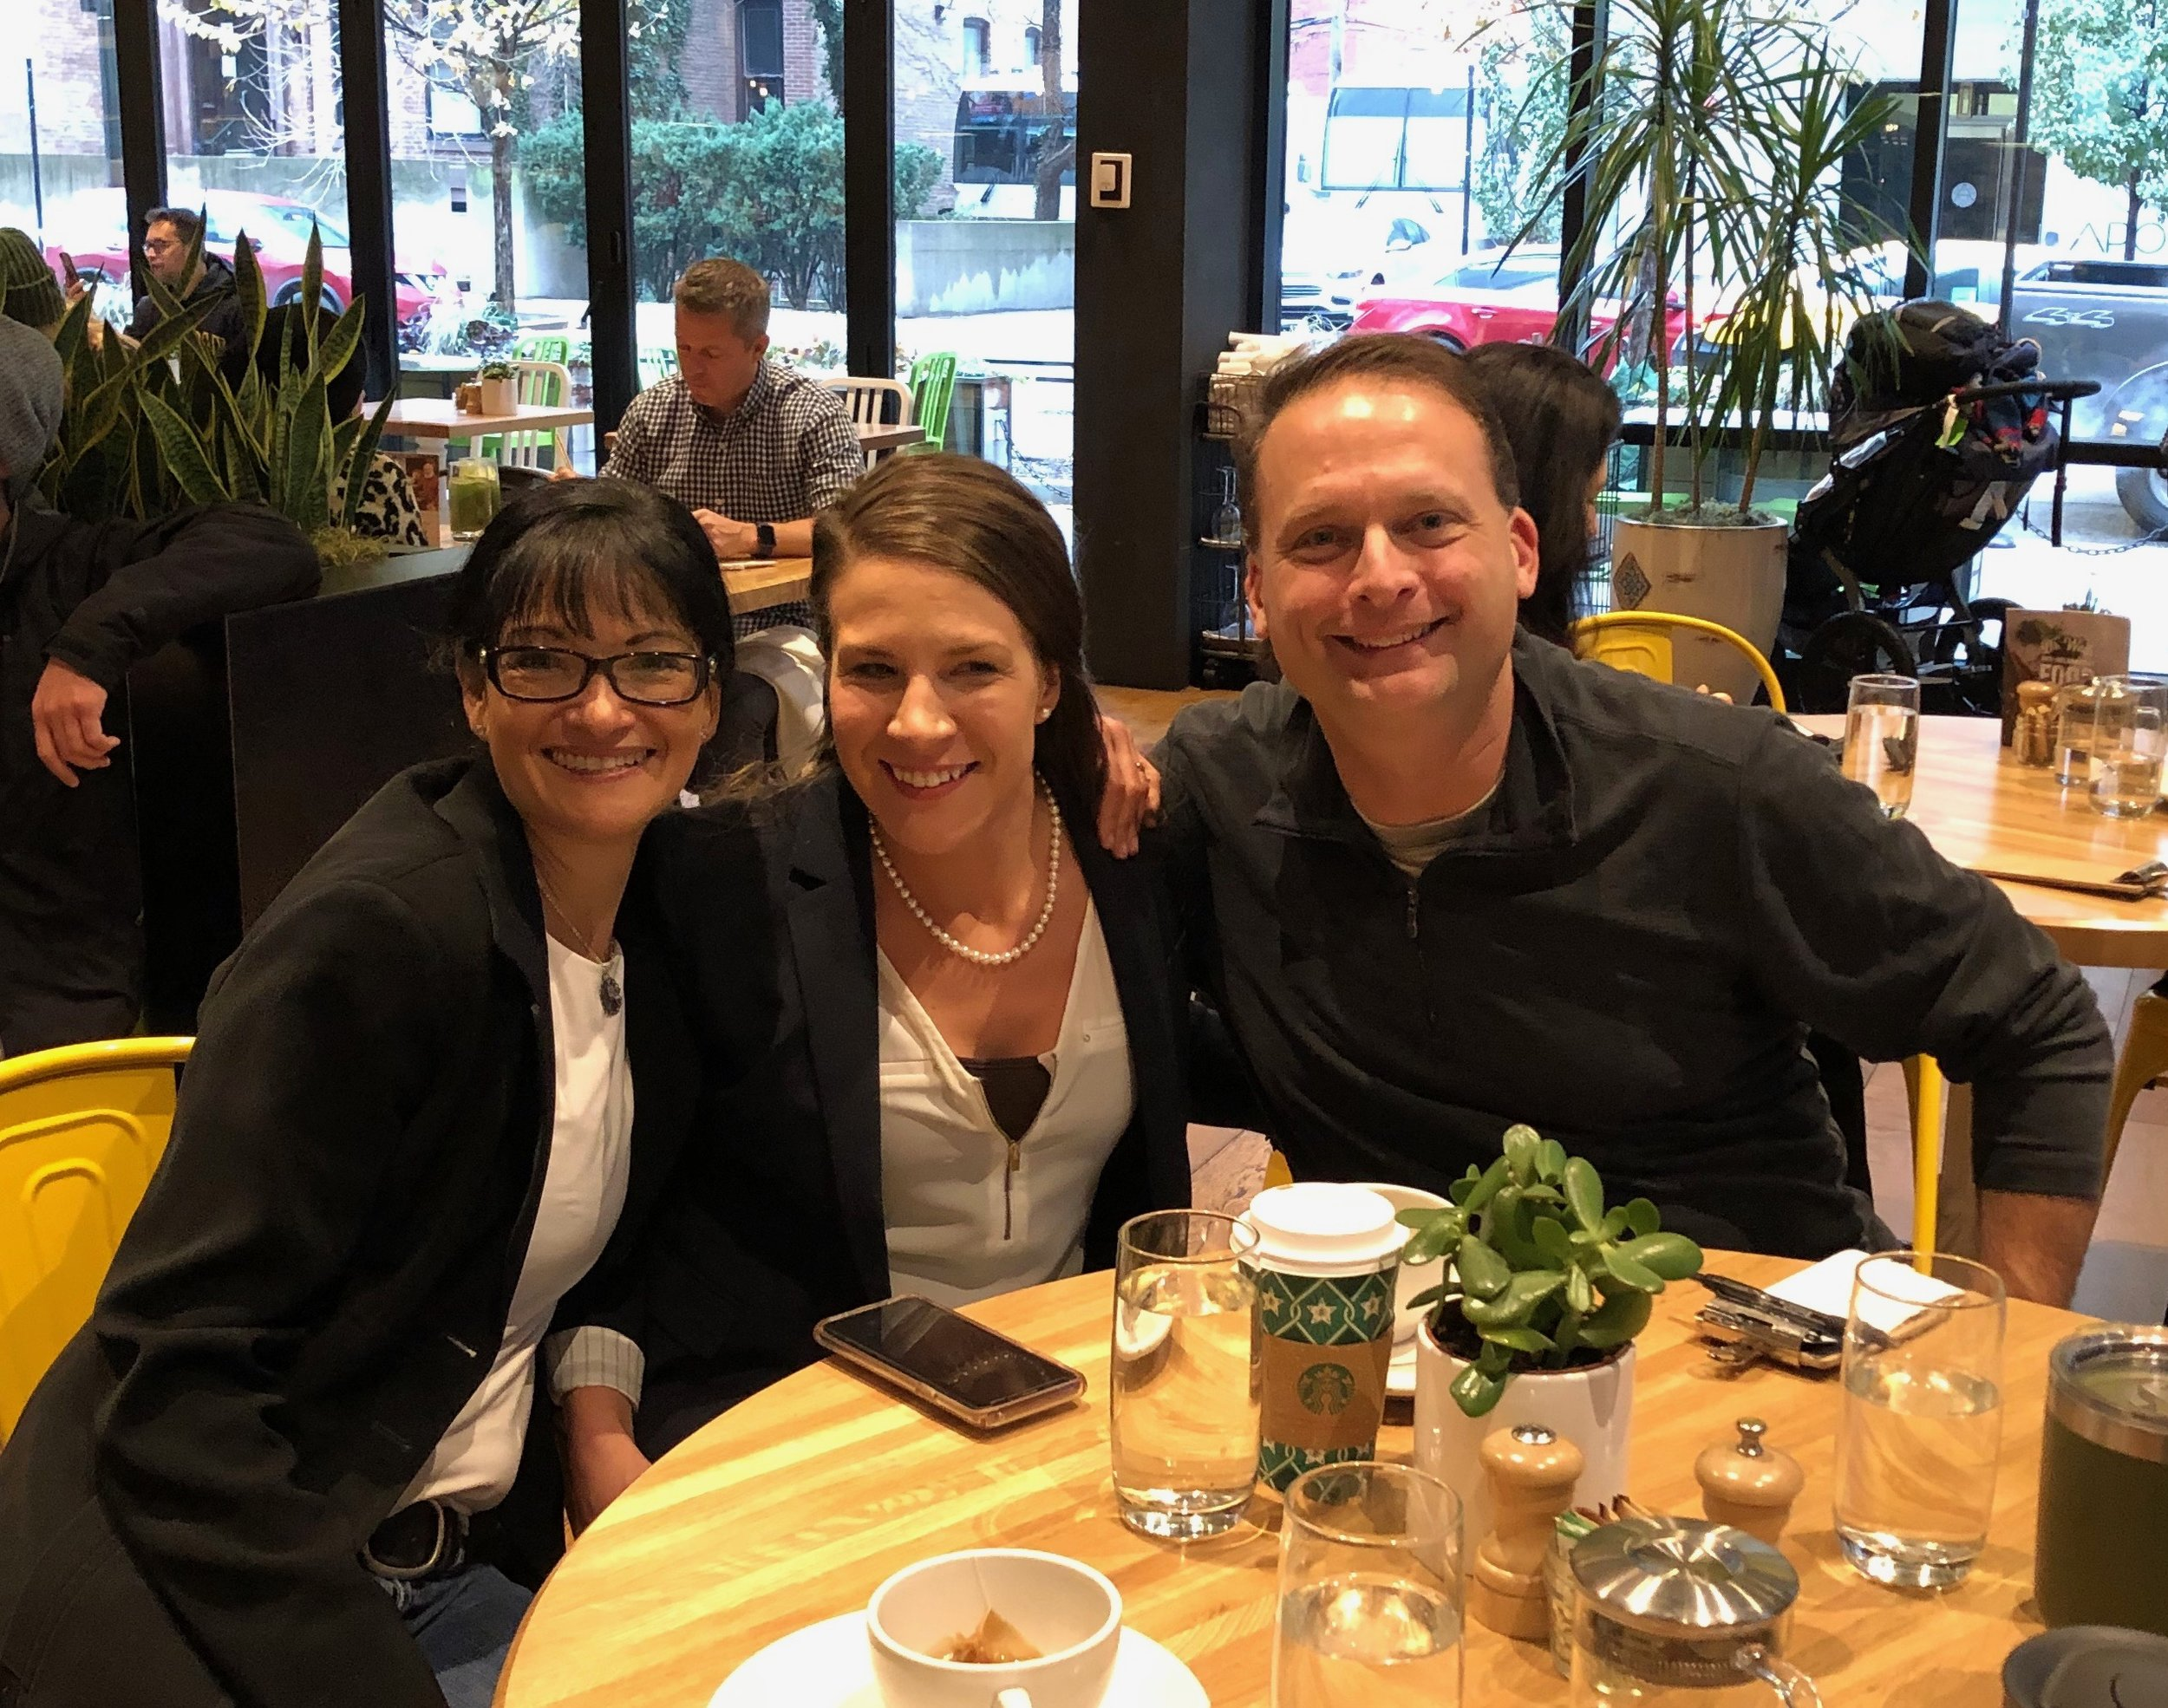 Caren and Alan take a break for lunch (with Amber Hinds of WealthMerge) while attending the Illinois NAELA (National Academy of Elder Law Attorneys) Summit in Chicago.